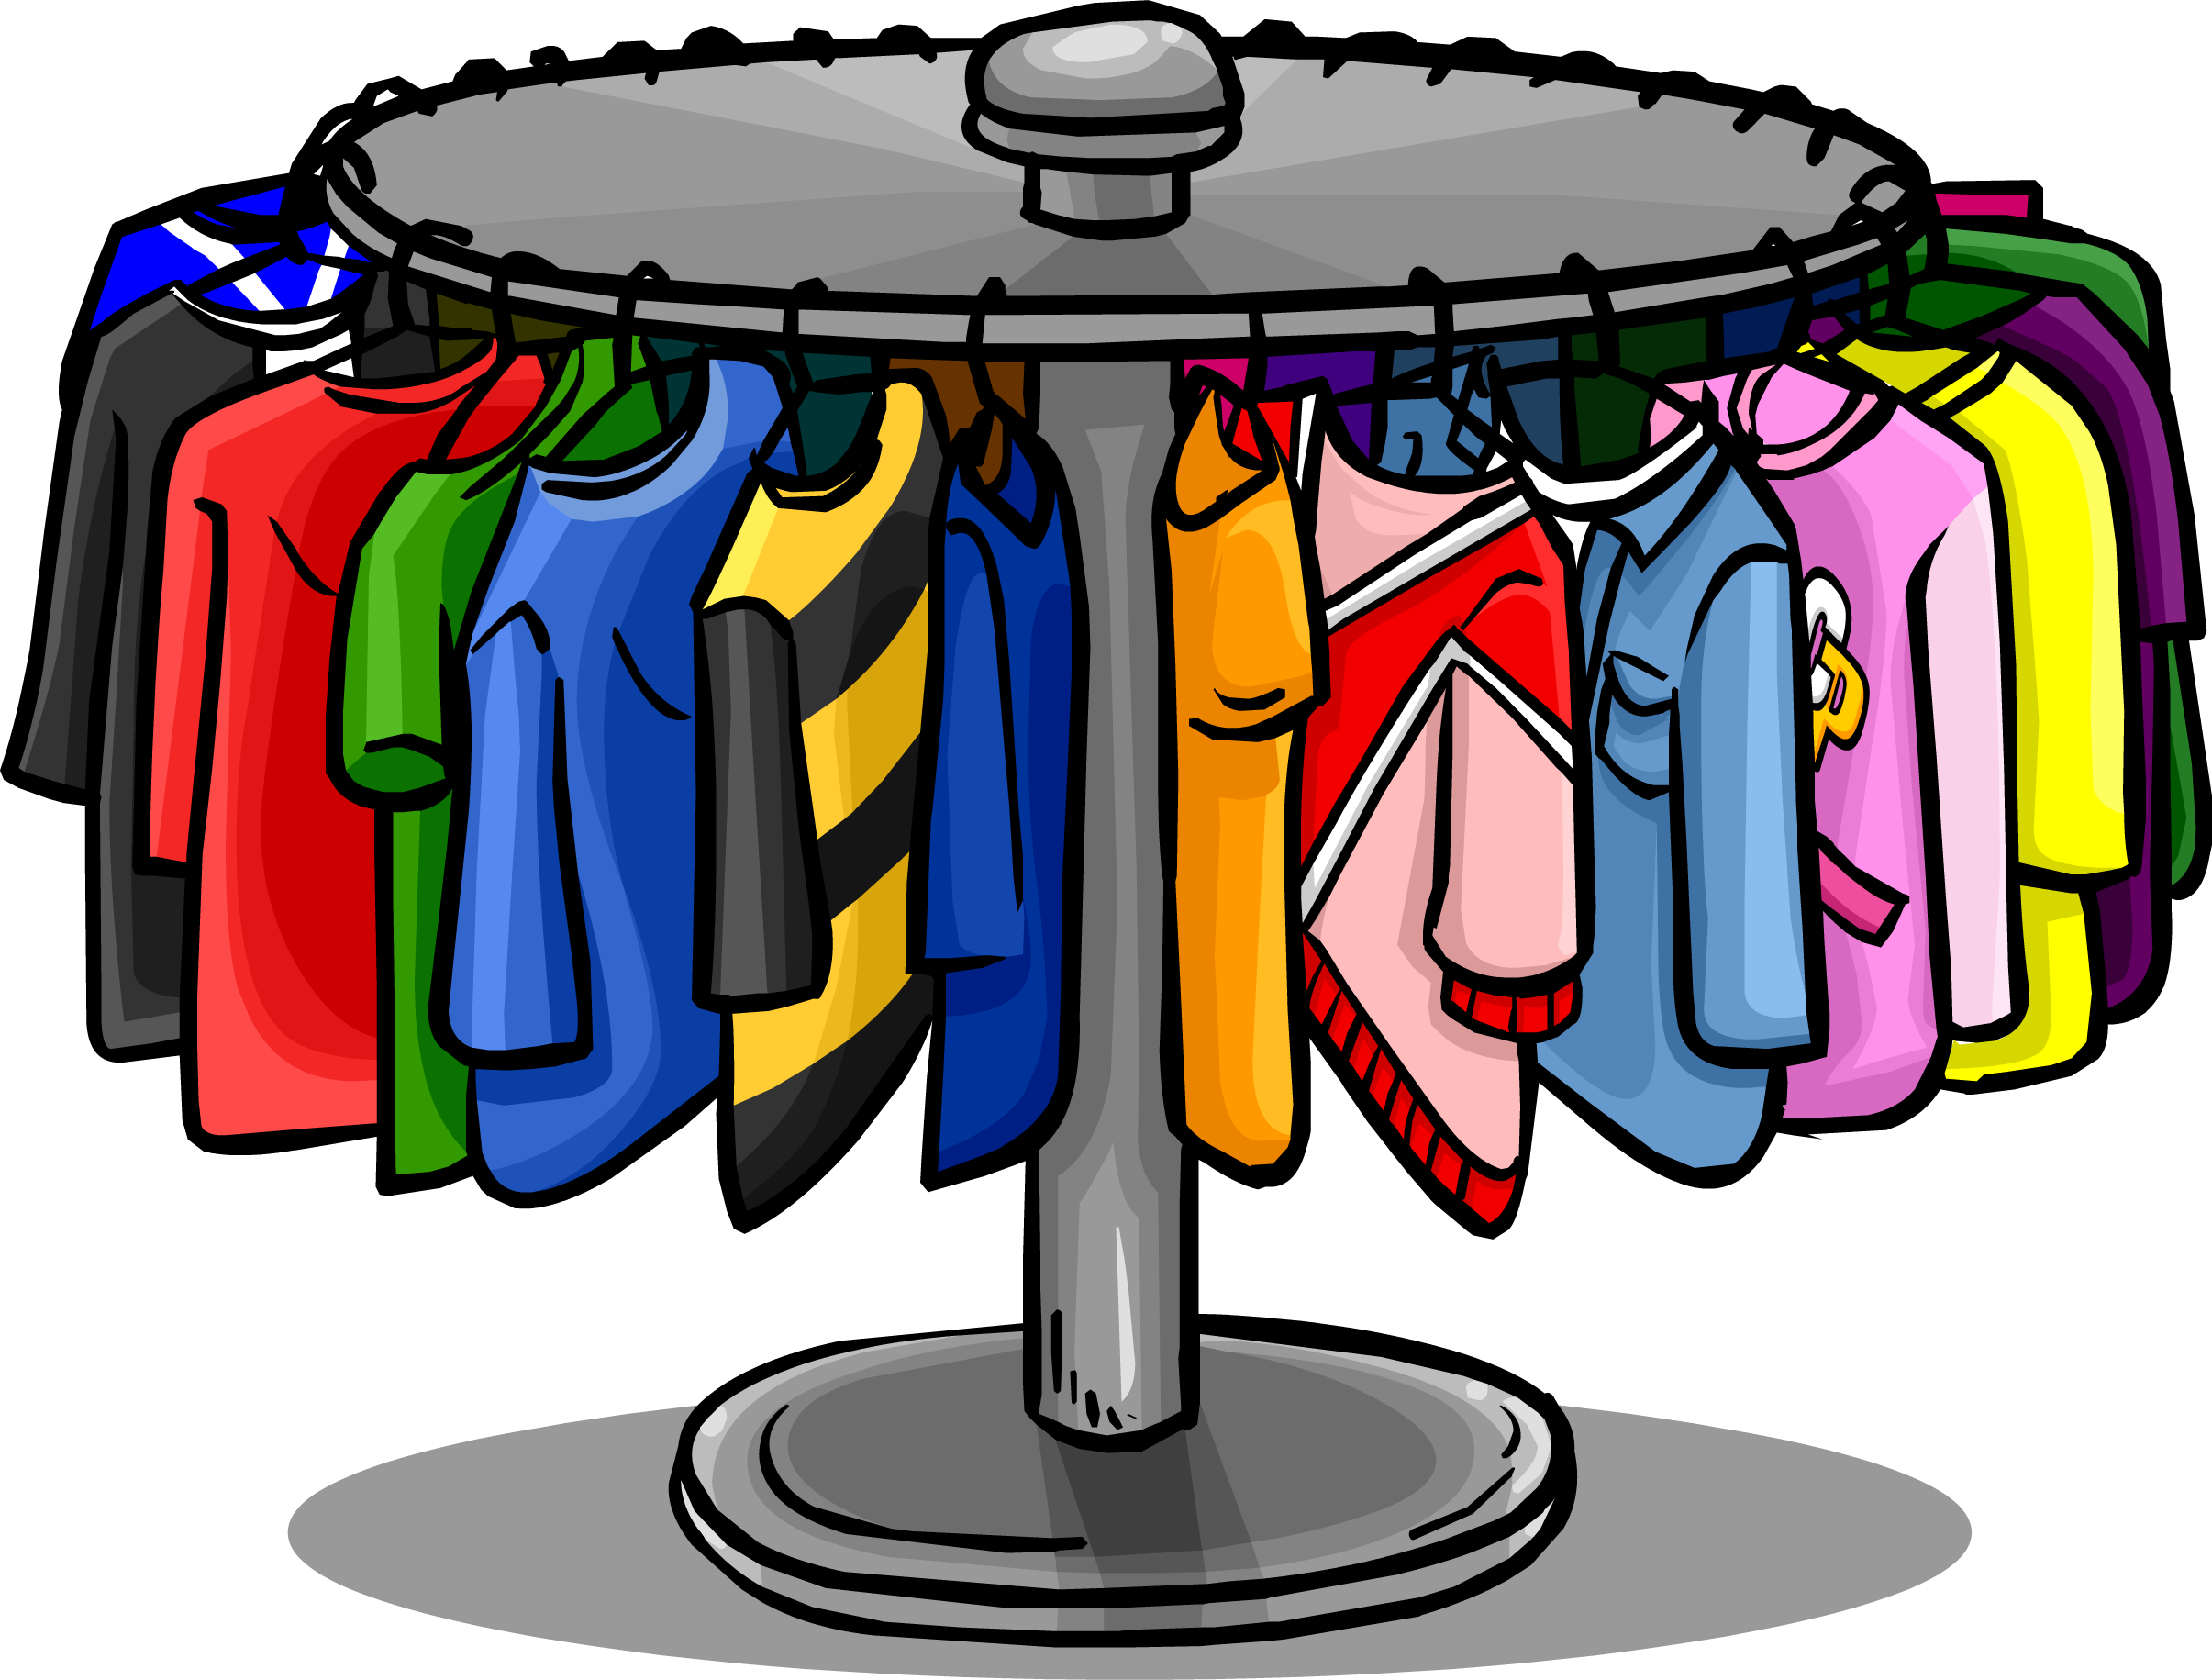 Clothing Sale Clipart Kid-Clothing sale clipart kid-12